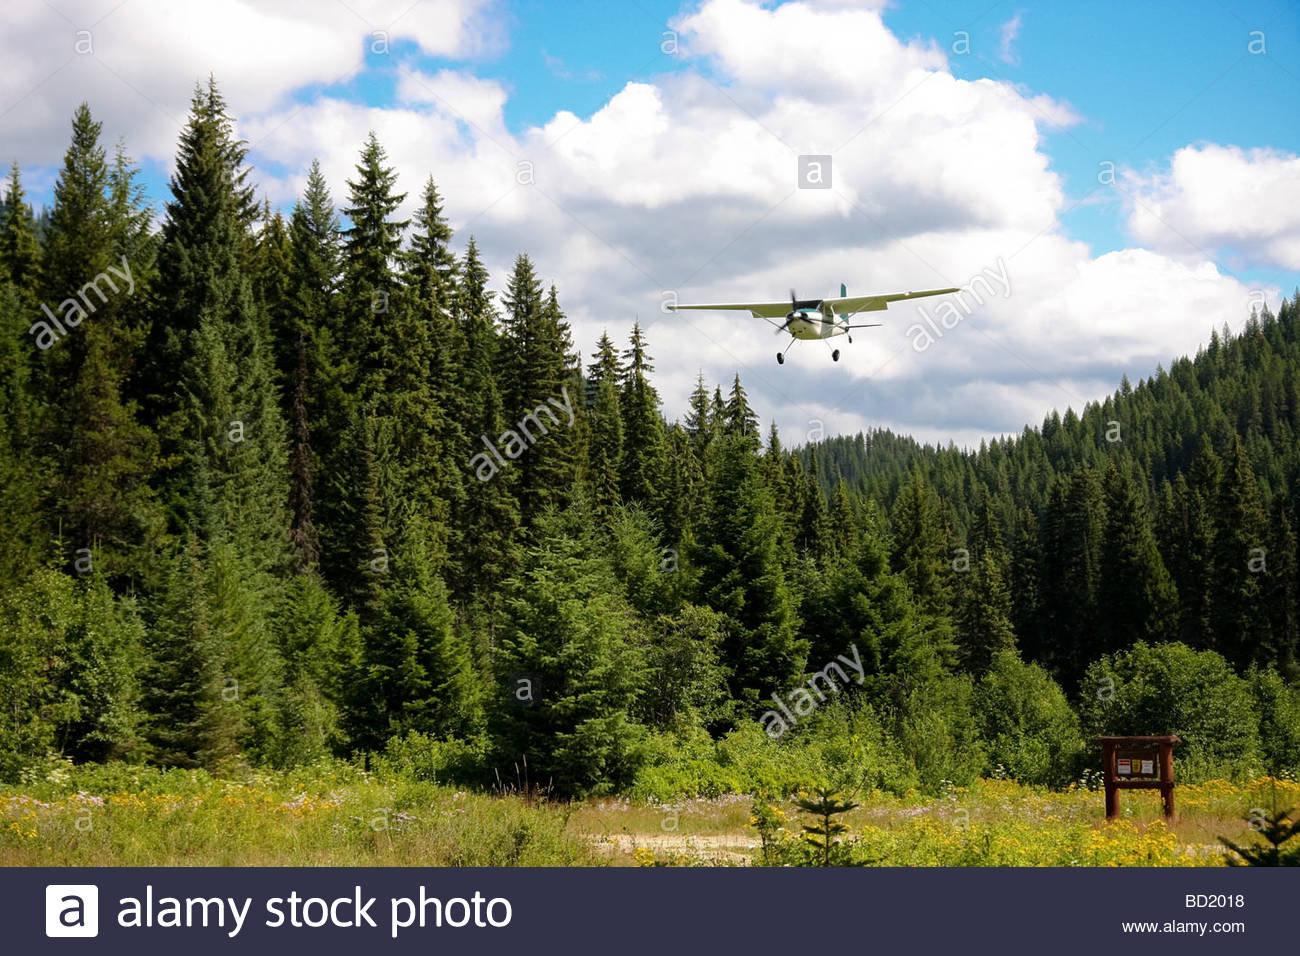 A single engine small private aircraft prepares to land at the remote Cayuse emergency landing strip in the wilderness - Stock Image